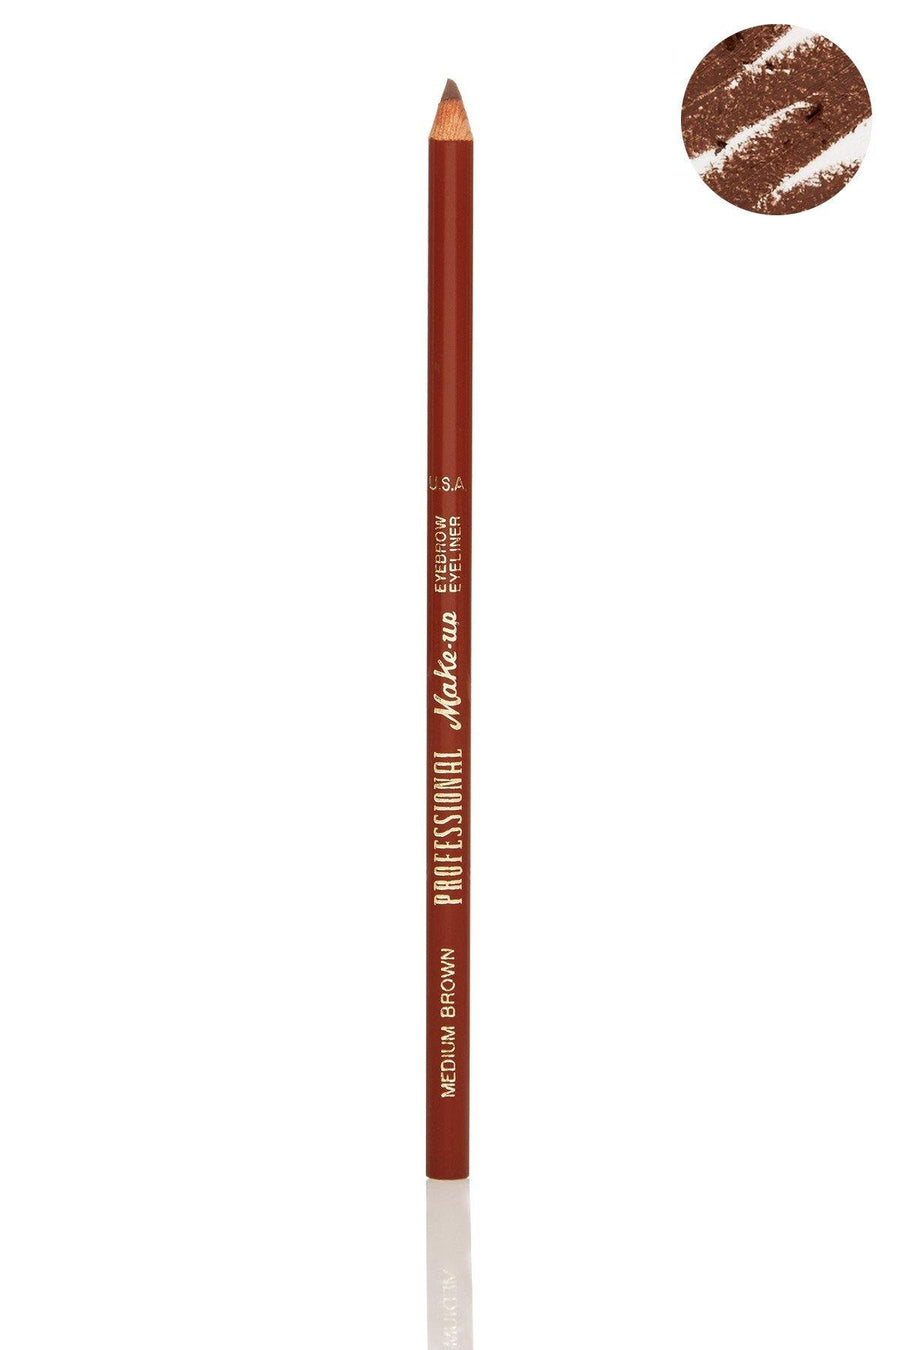 Medium Brown Eyebrow Eyeliner Pencil - Blend Mineral Cosmetics